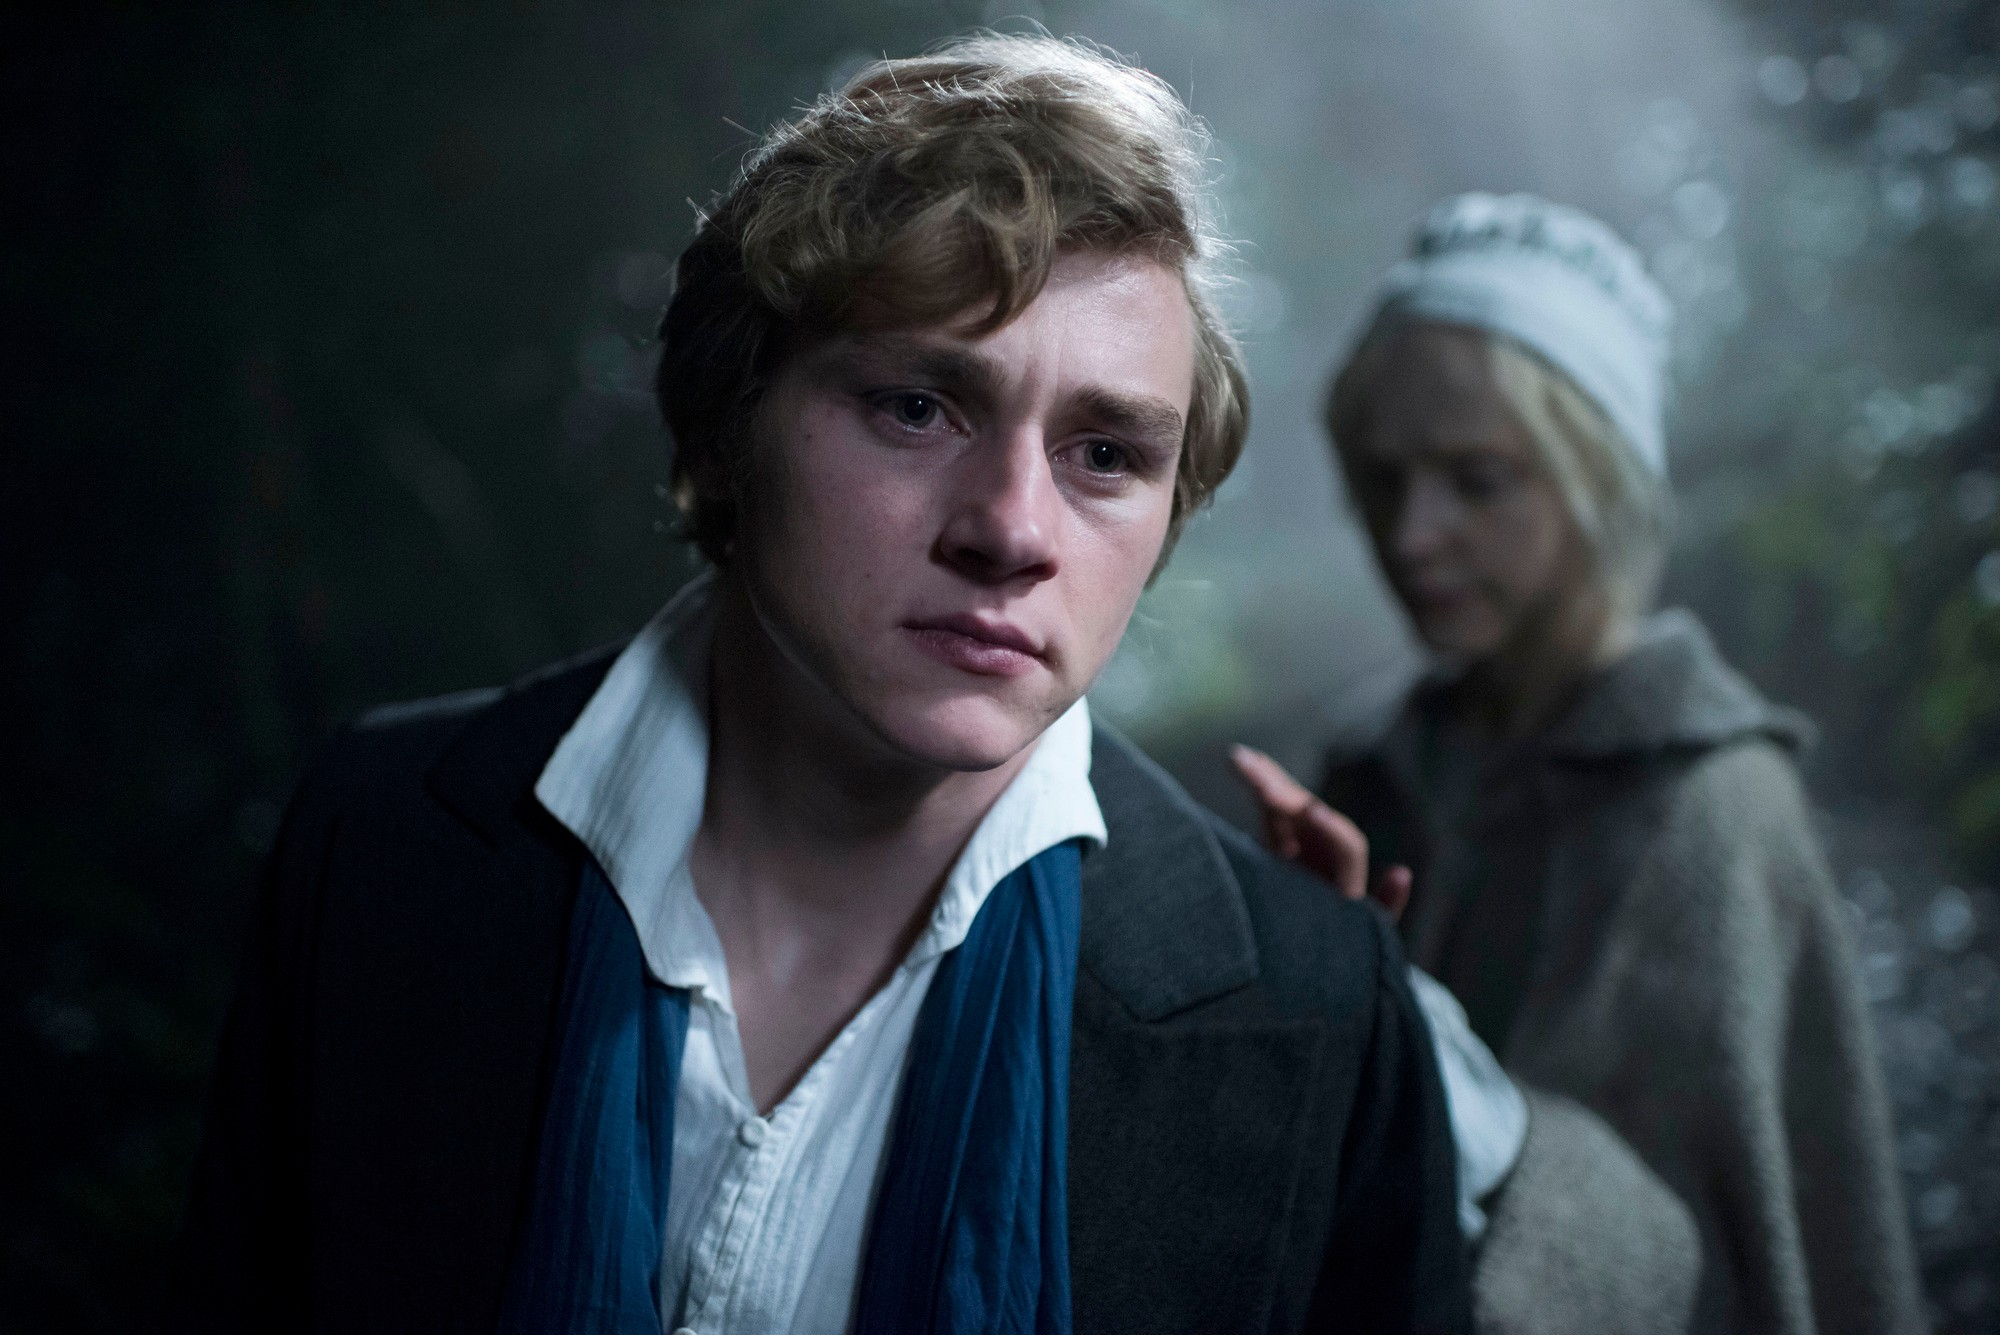 Walter (BEN HARDY), Anne (OLIVIA VINALL) - (C) Origin Pictures - Photographer: Steffan Hill